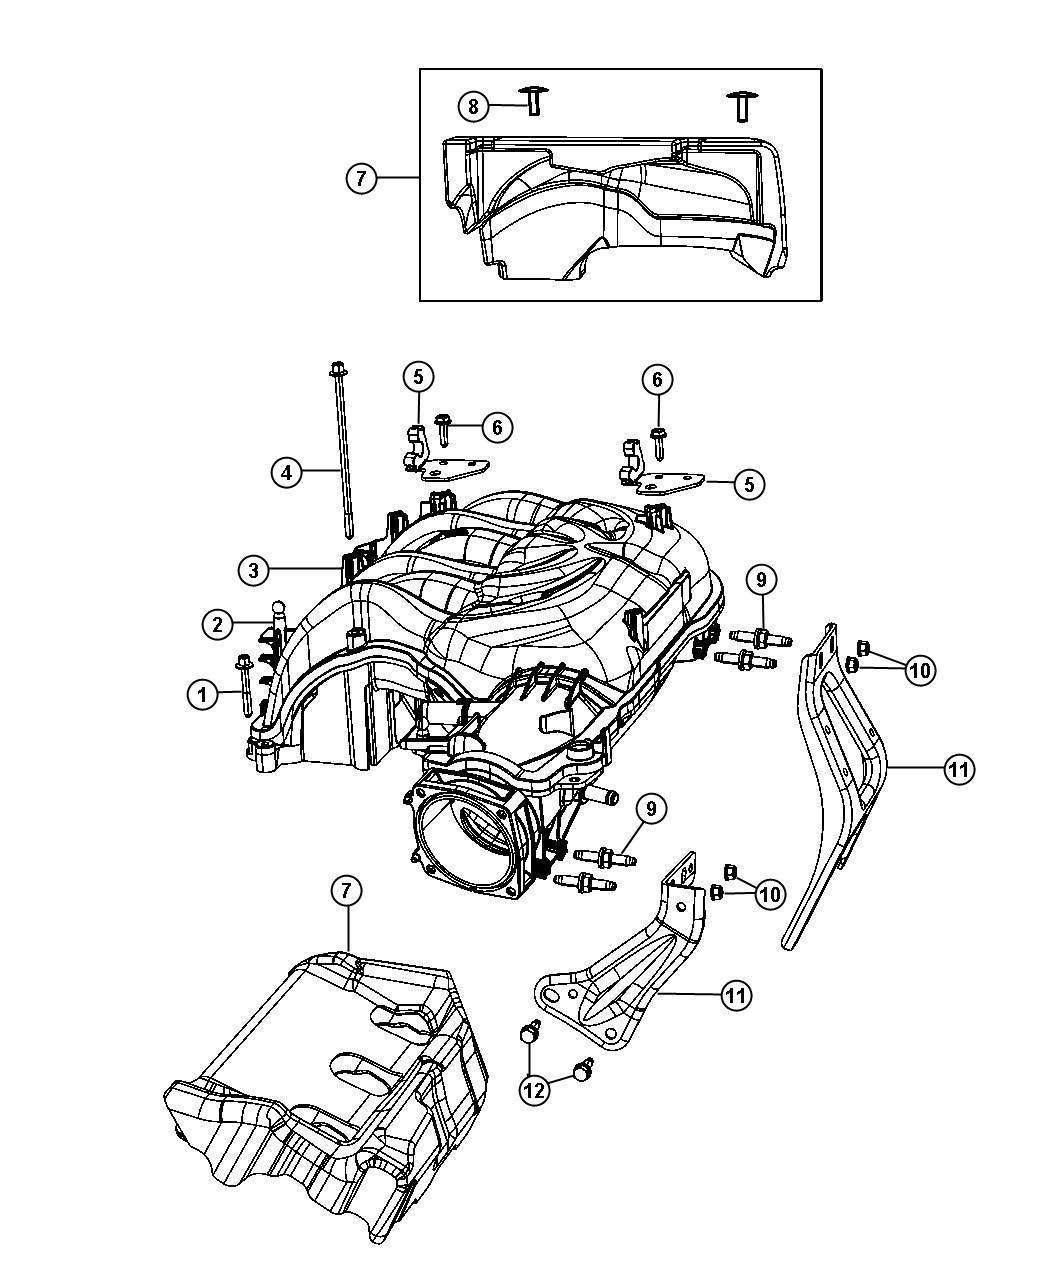 Jeep Wrangler 3 6l Engine Diagram Wiring Diagram